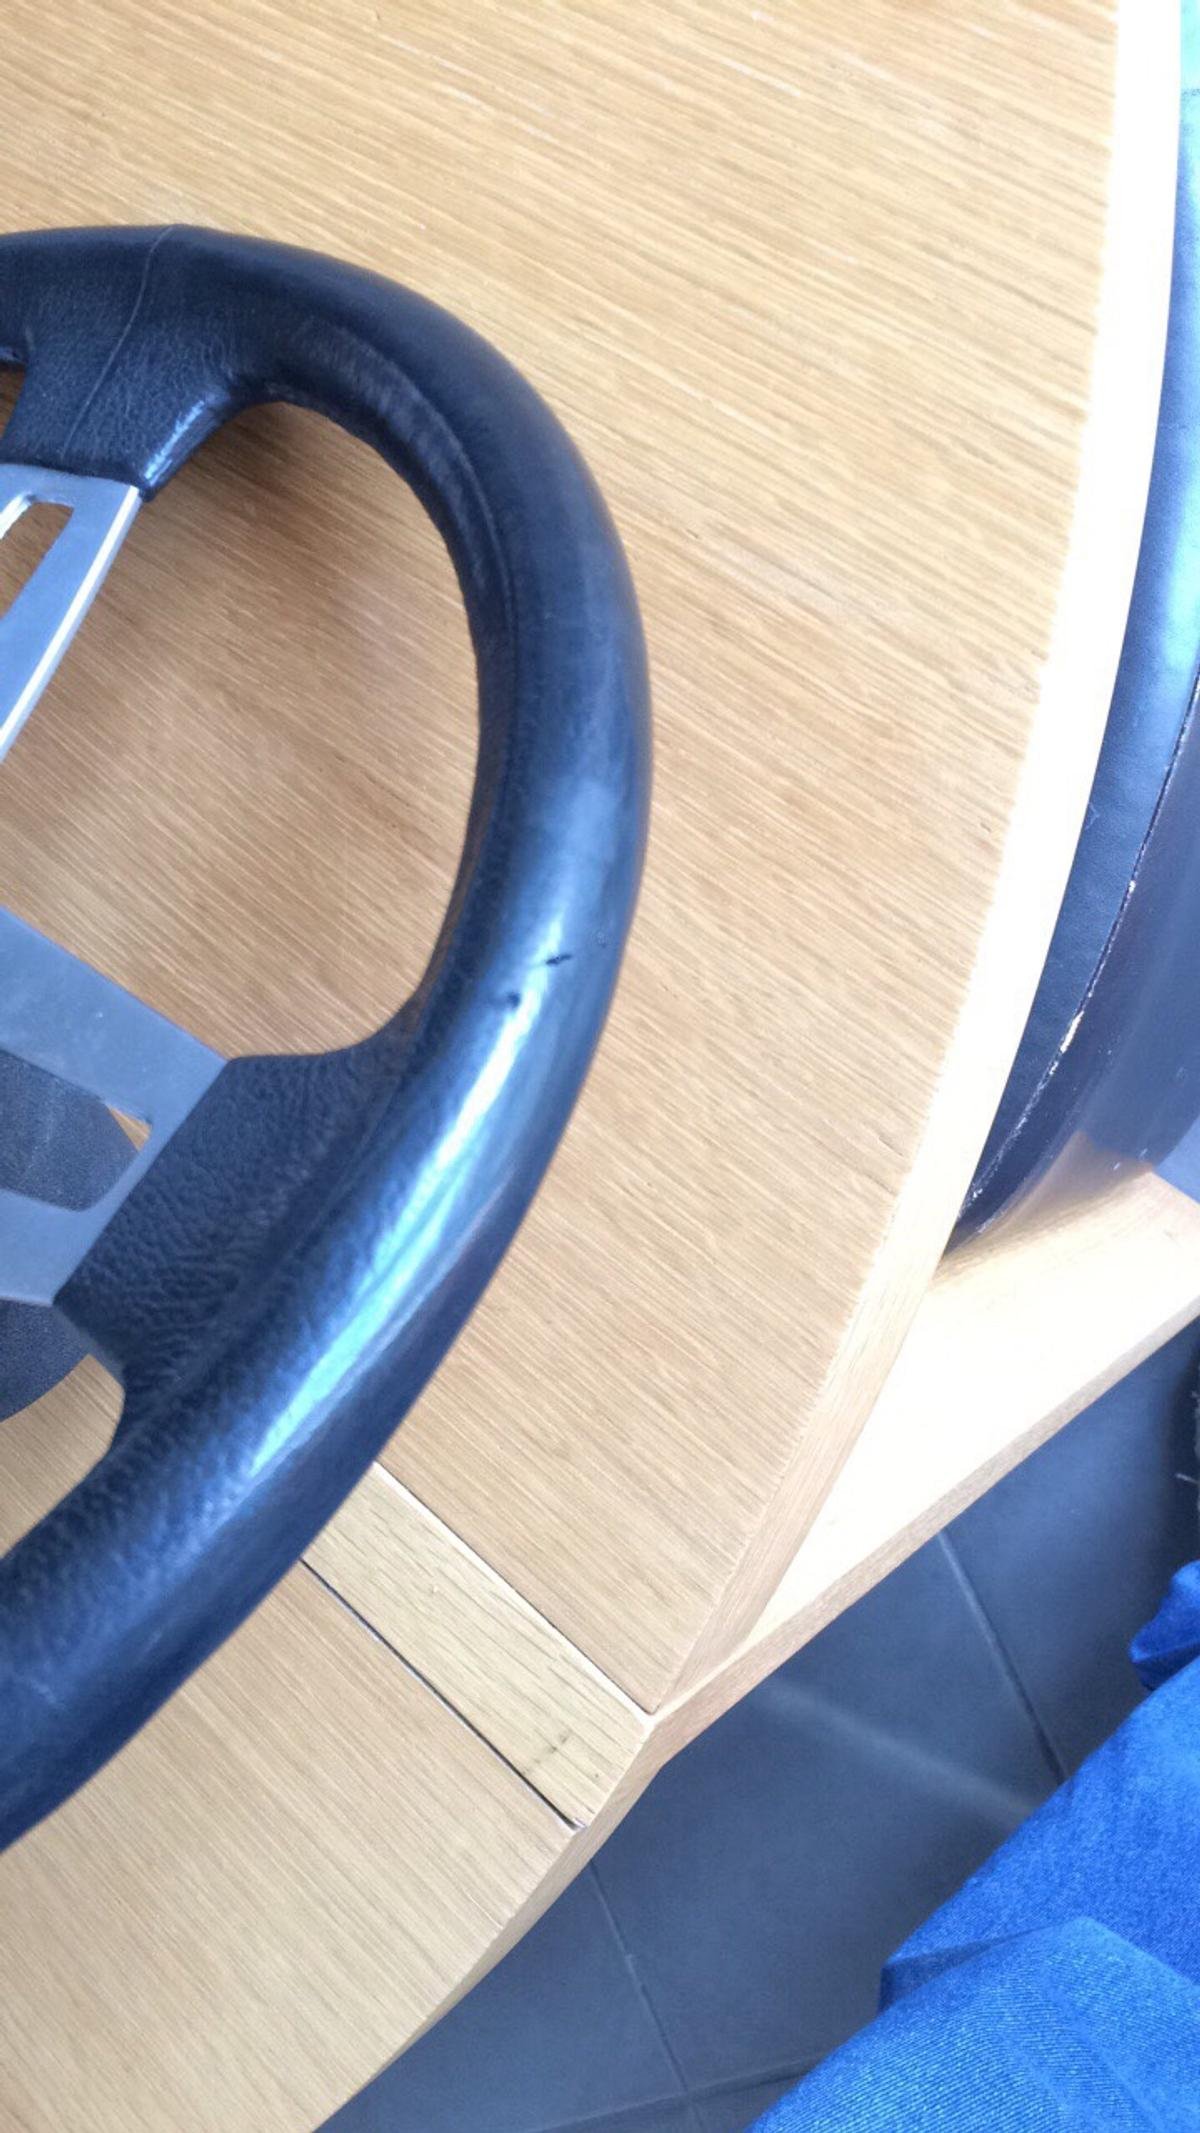 Vw mk1 golf caddy Wulfburg steering wheel in S72 Wakefield for